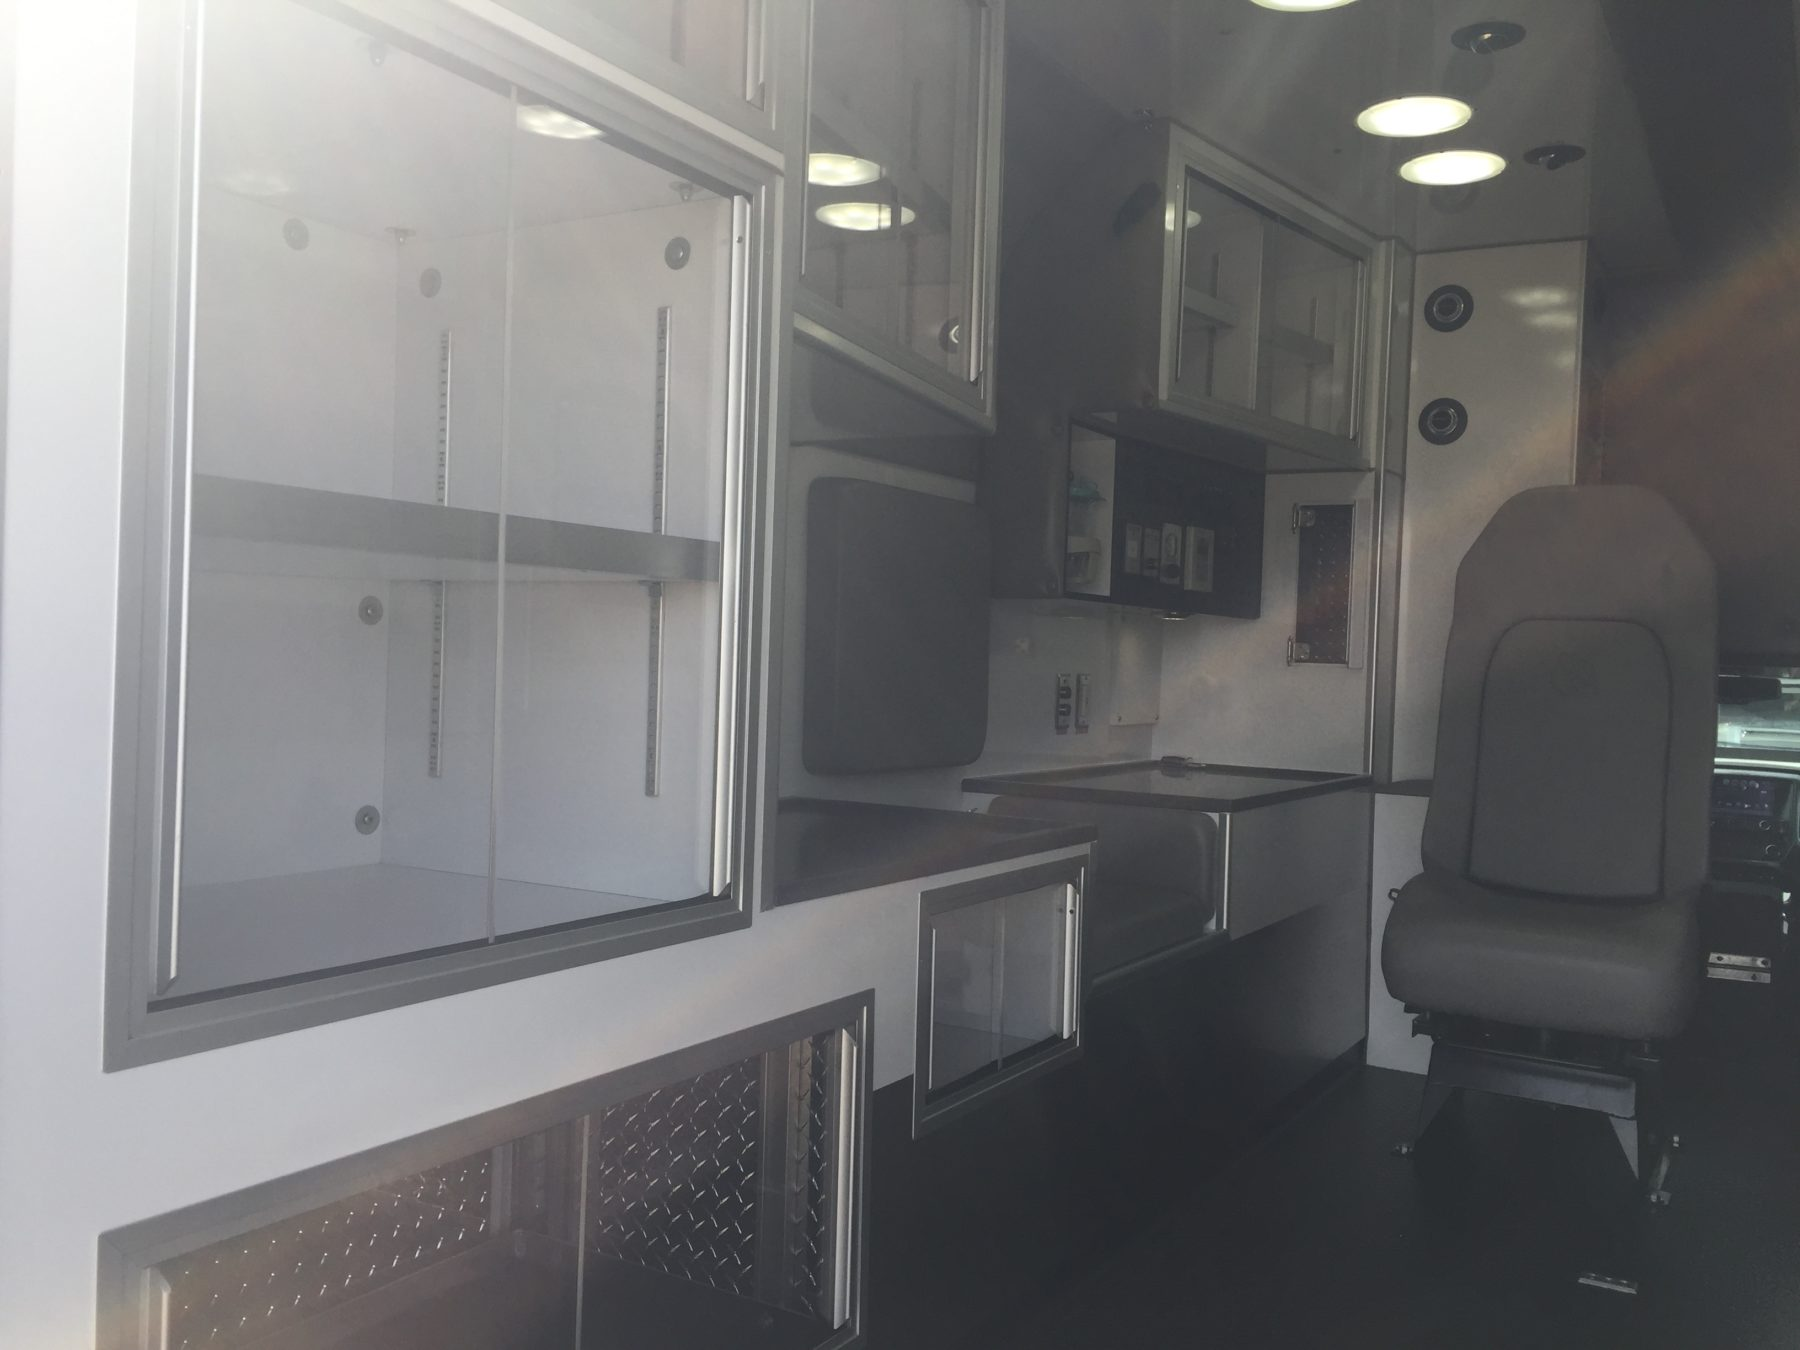 2019 Chevrolet K3500 4x4 Type 1 Ambulance For Sale – Picture 12